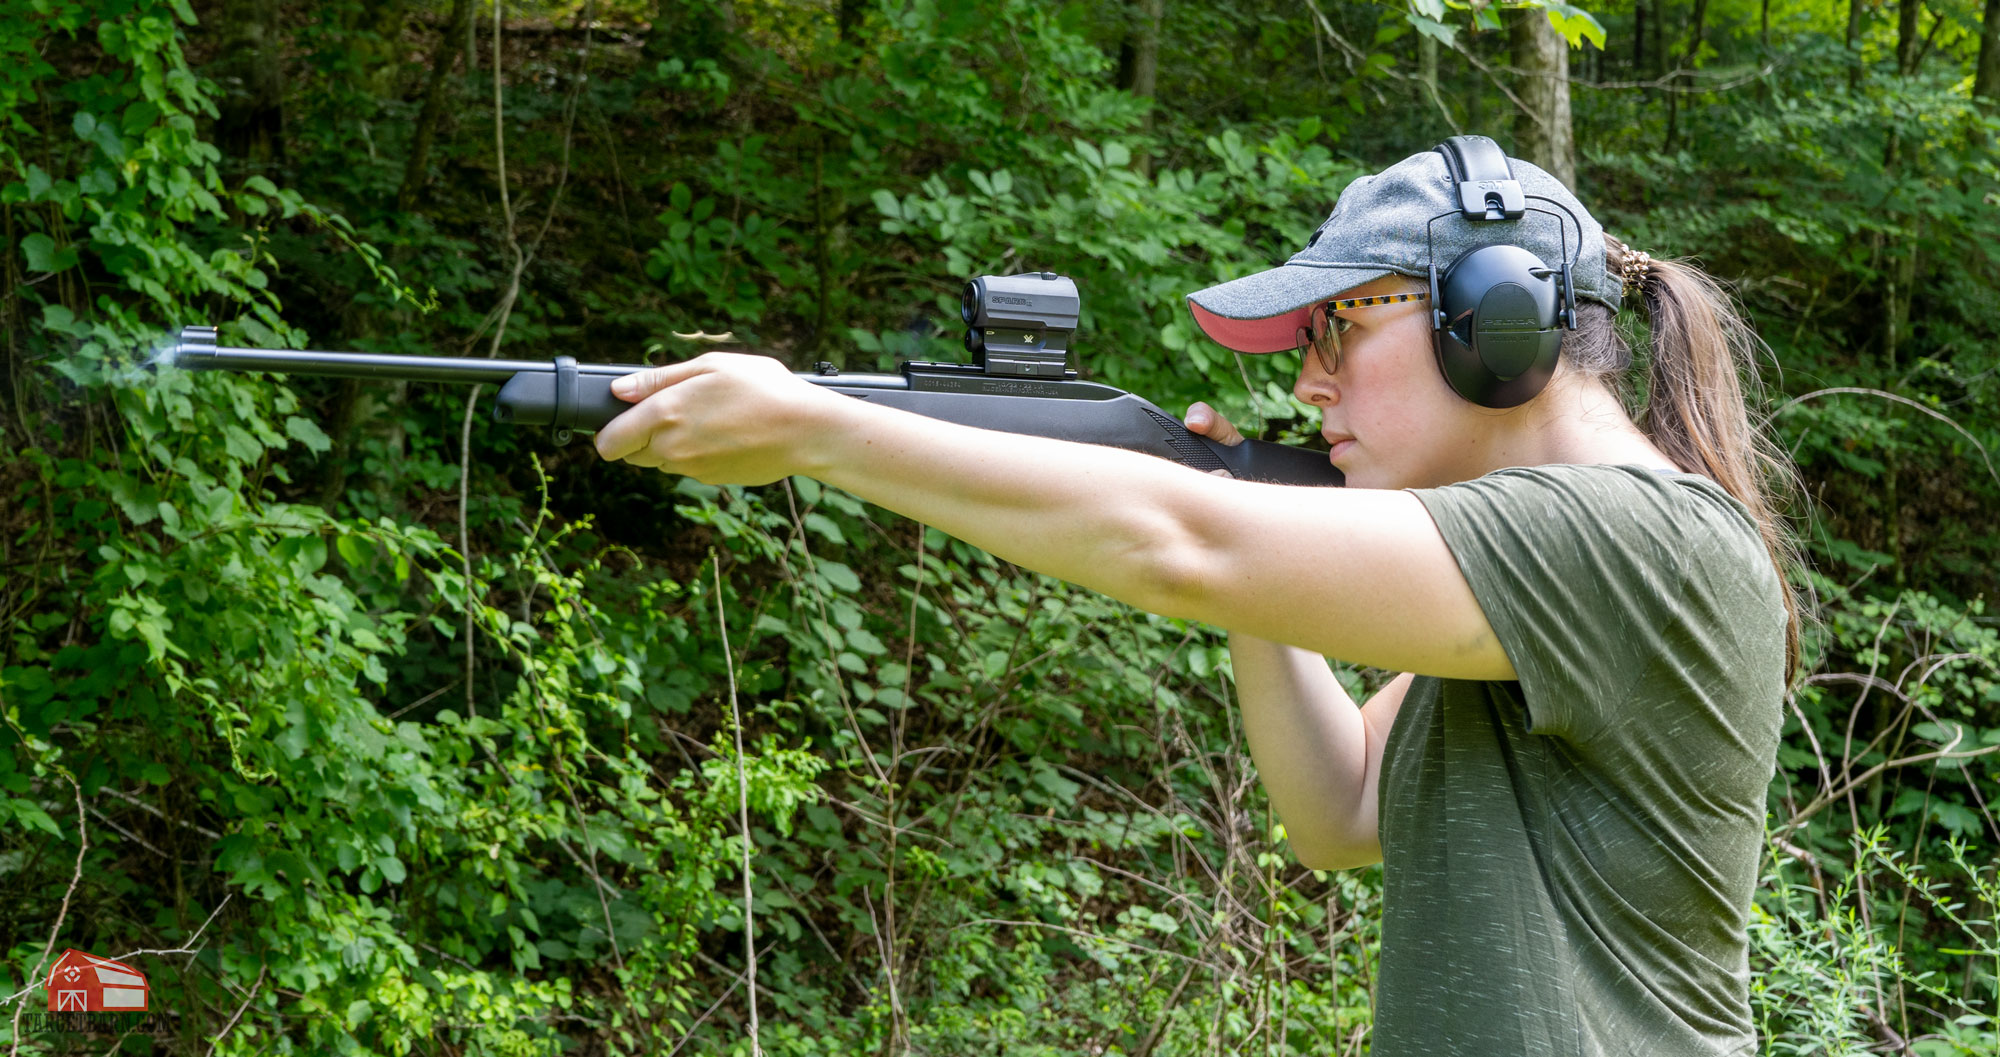 a light rifle like the ruger 10/22 is the best choice for using 22lr for self defense